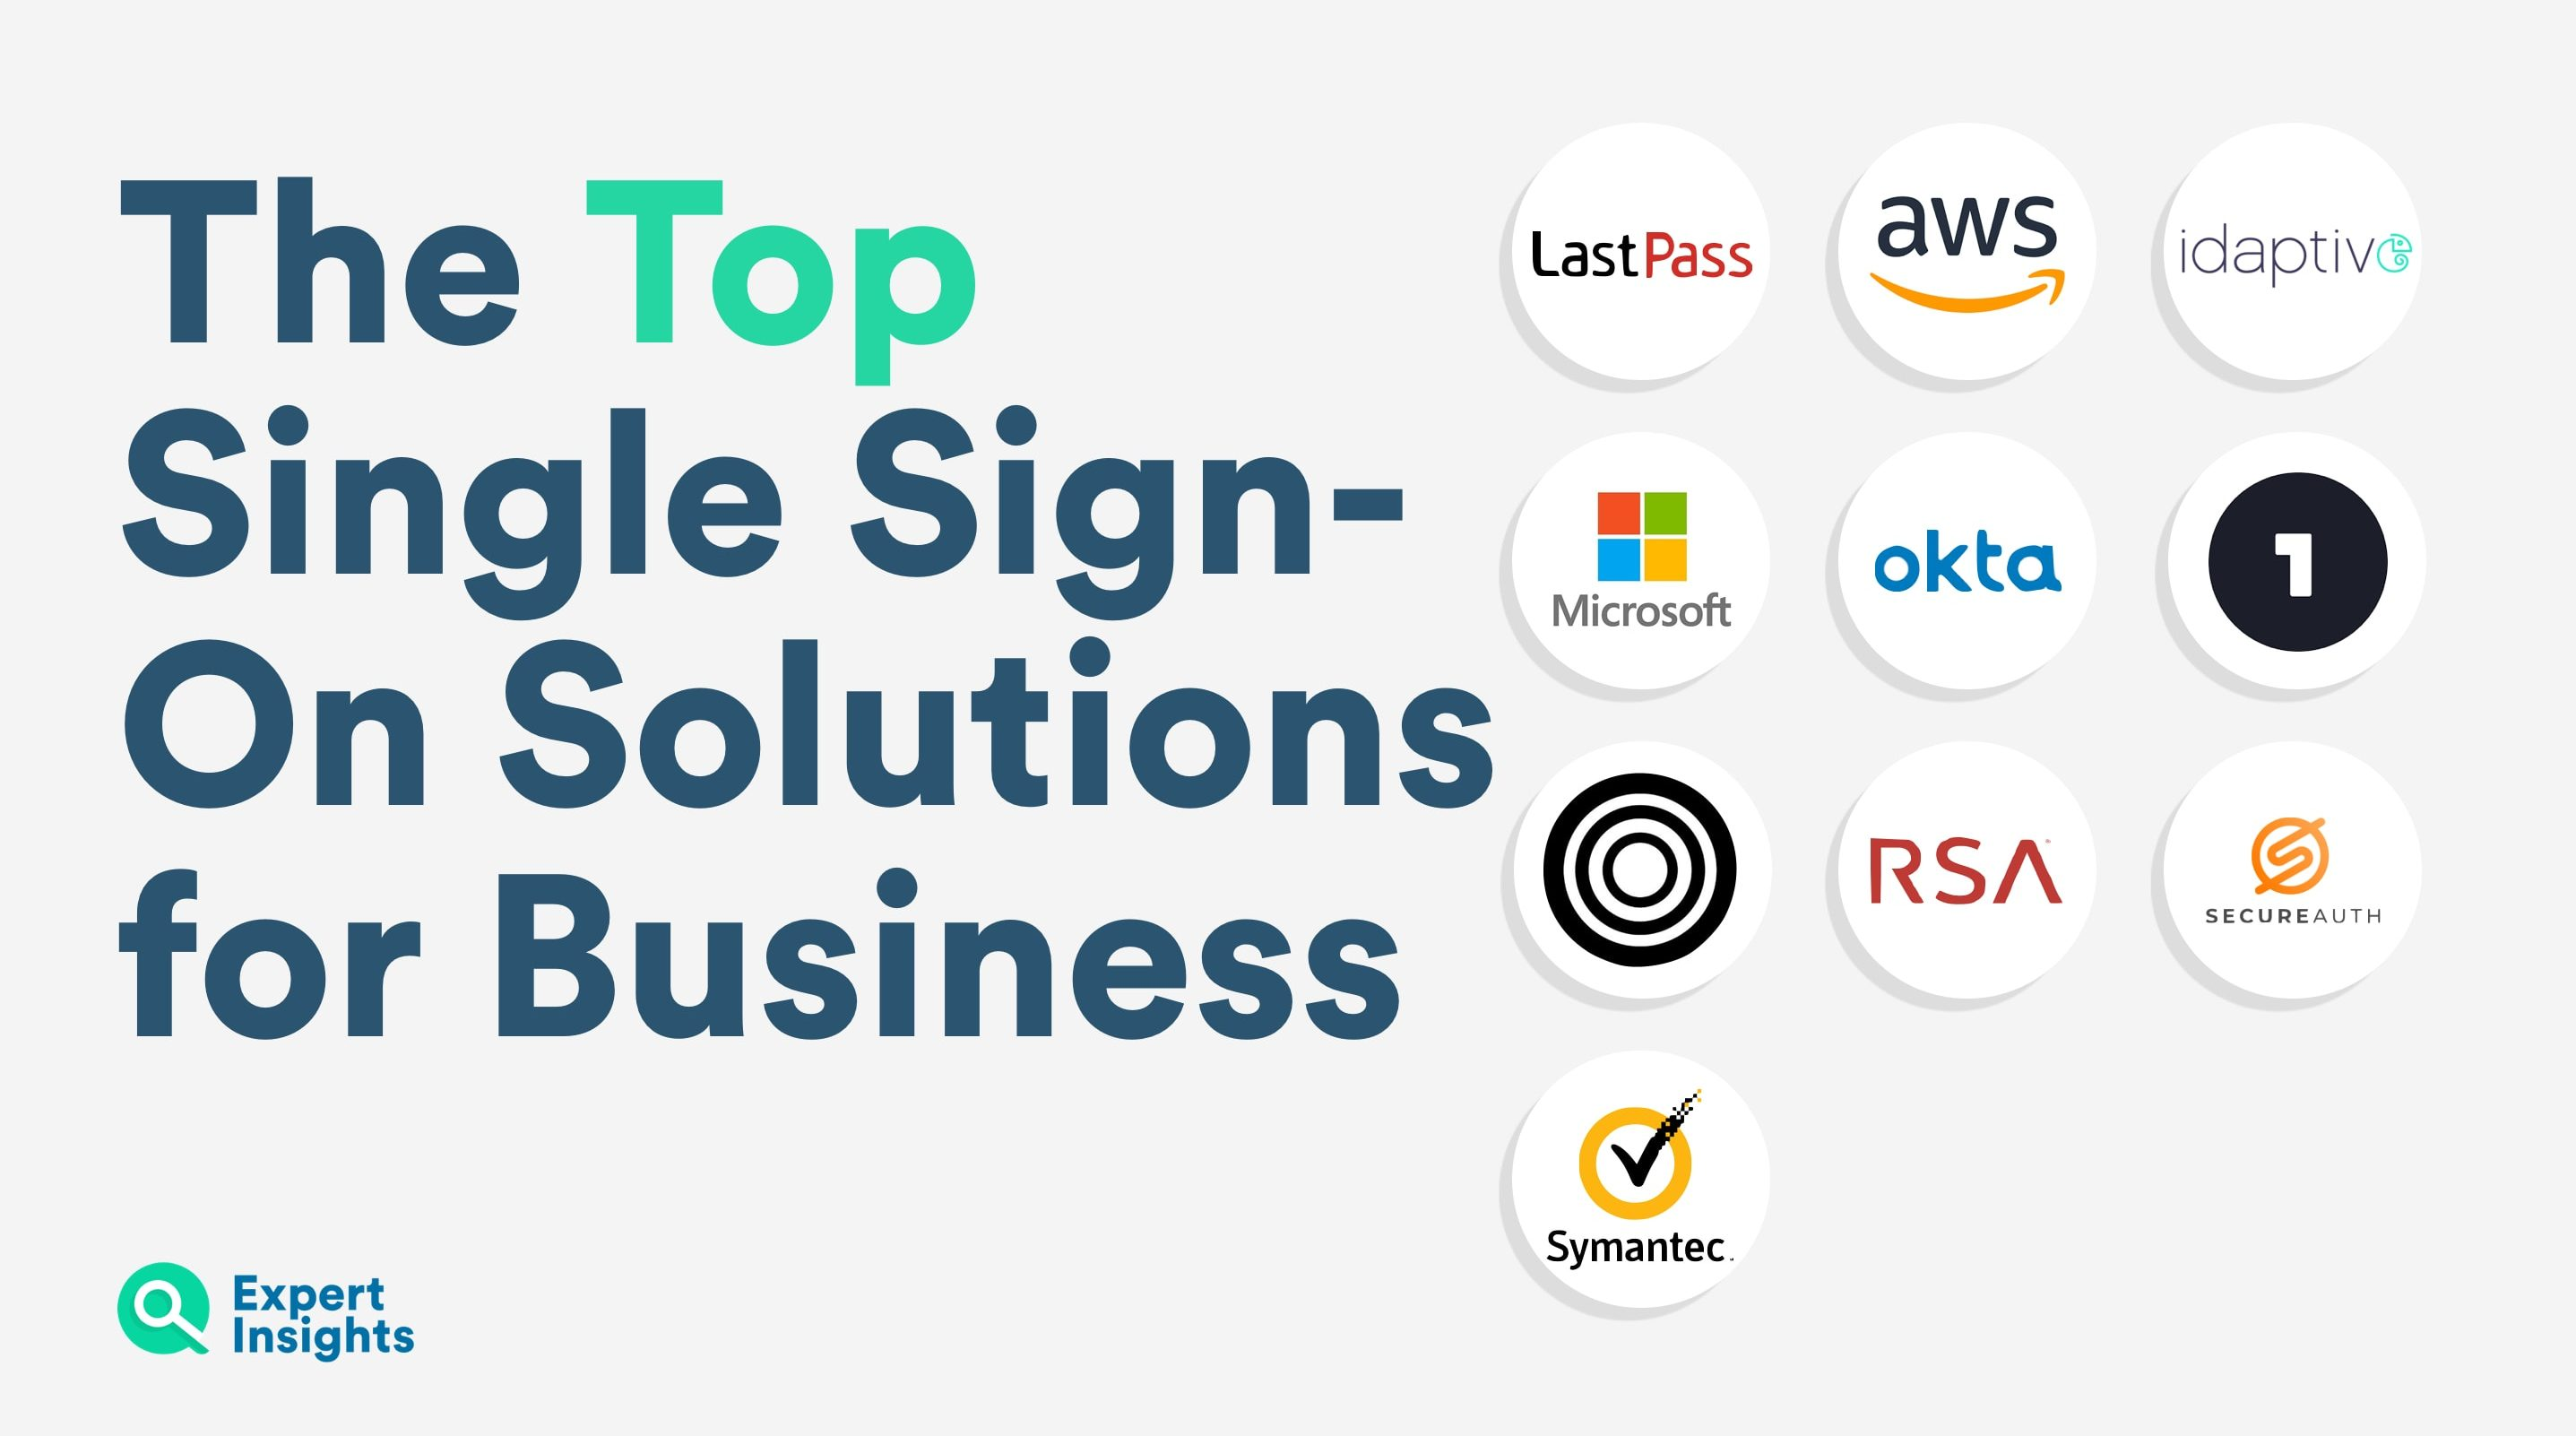 The top single sign on solutions for business - Expert Insights